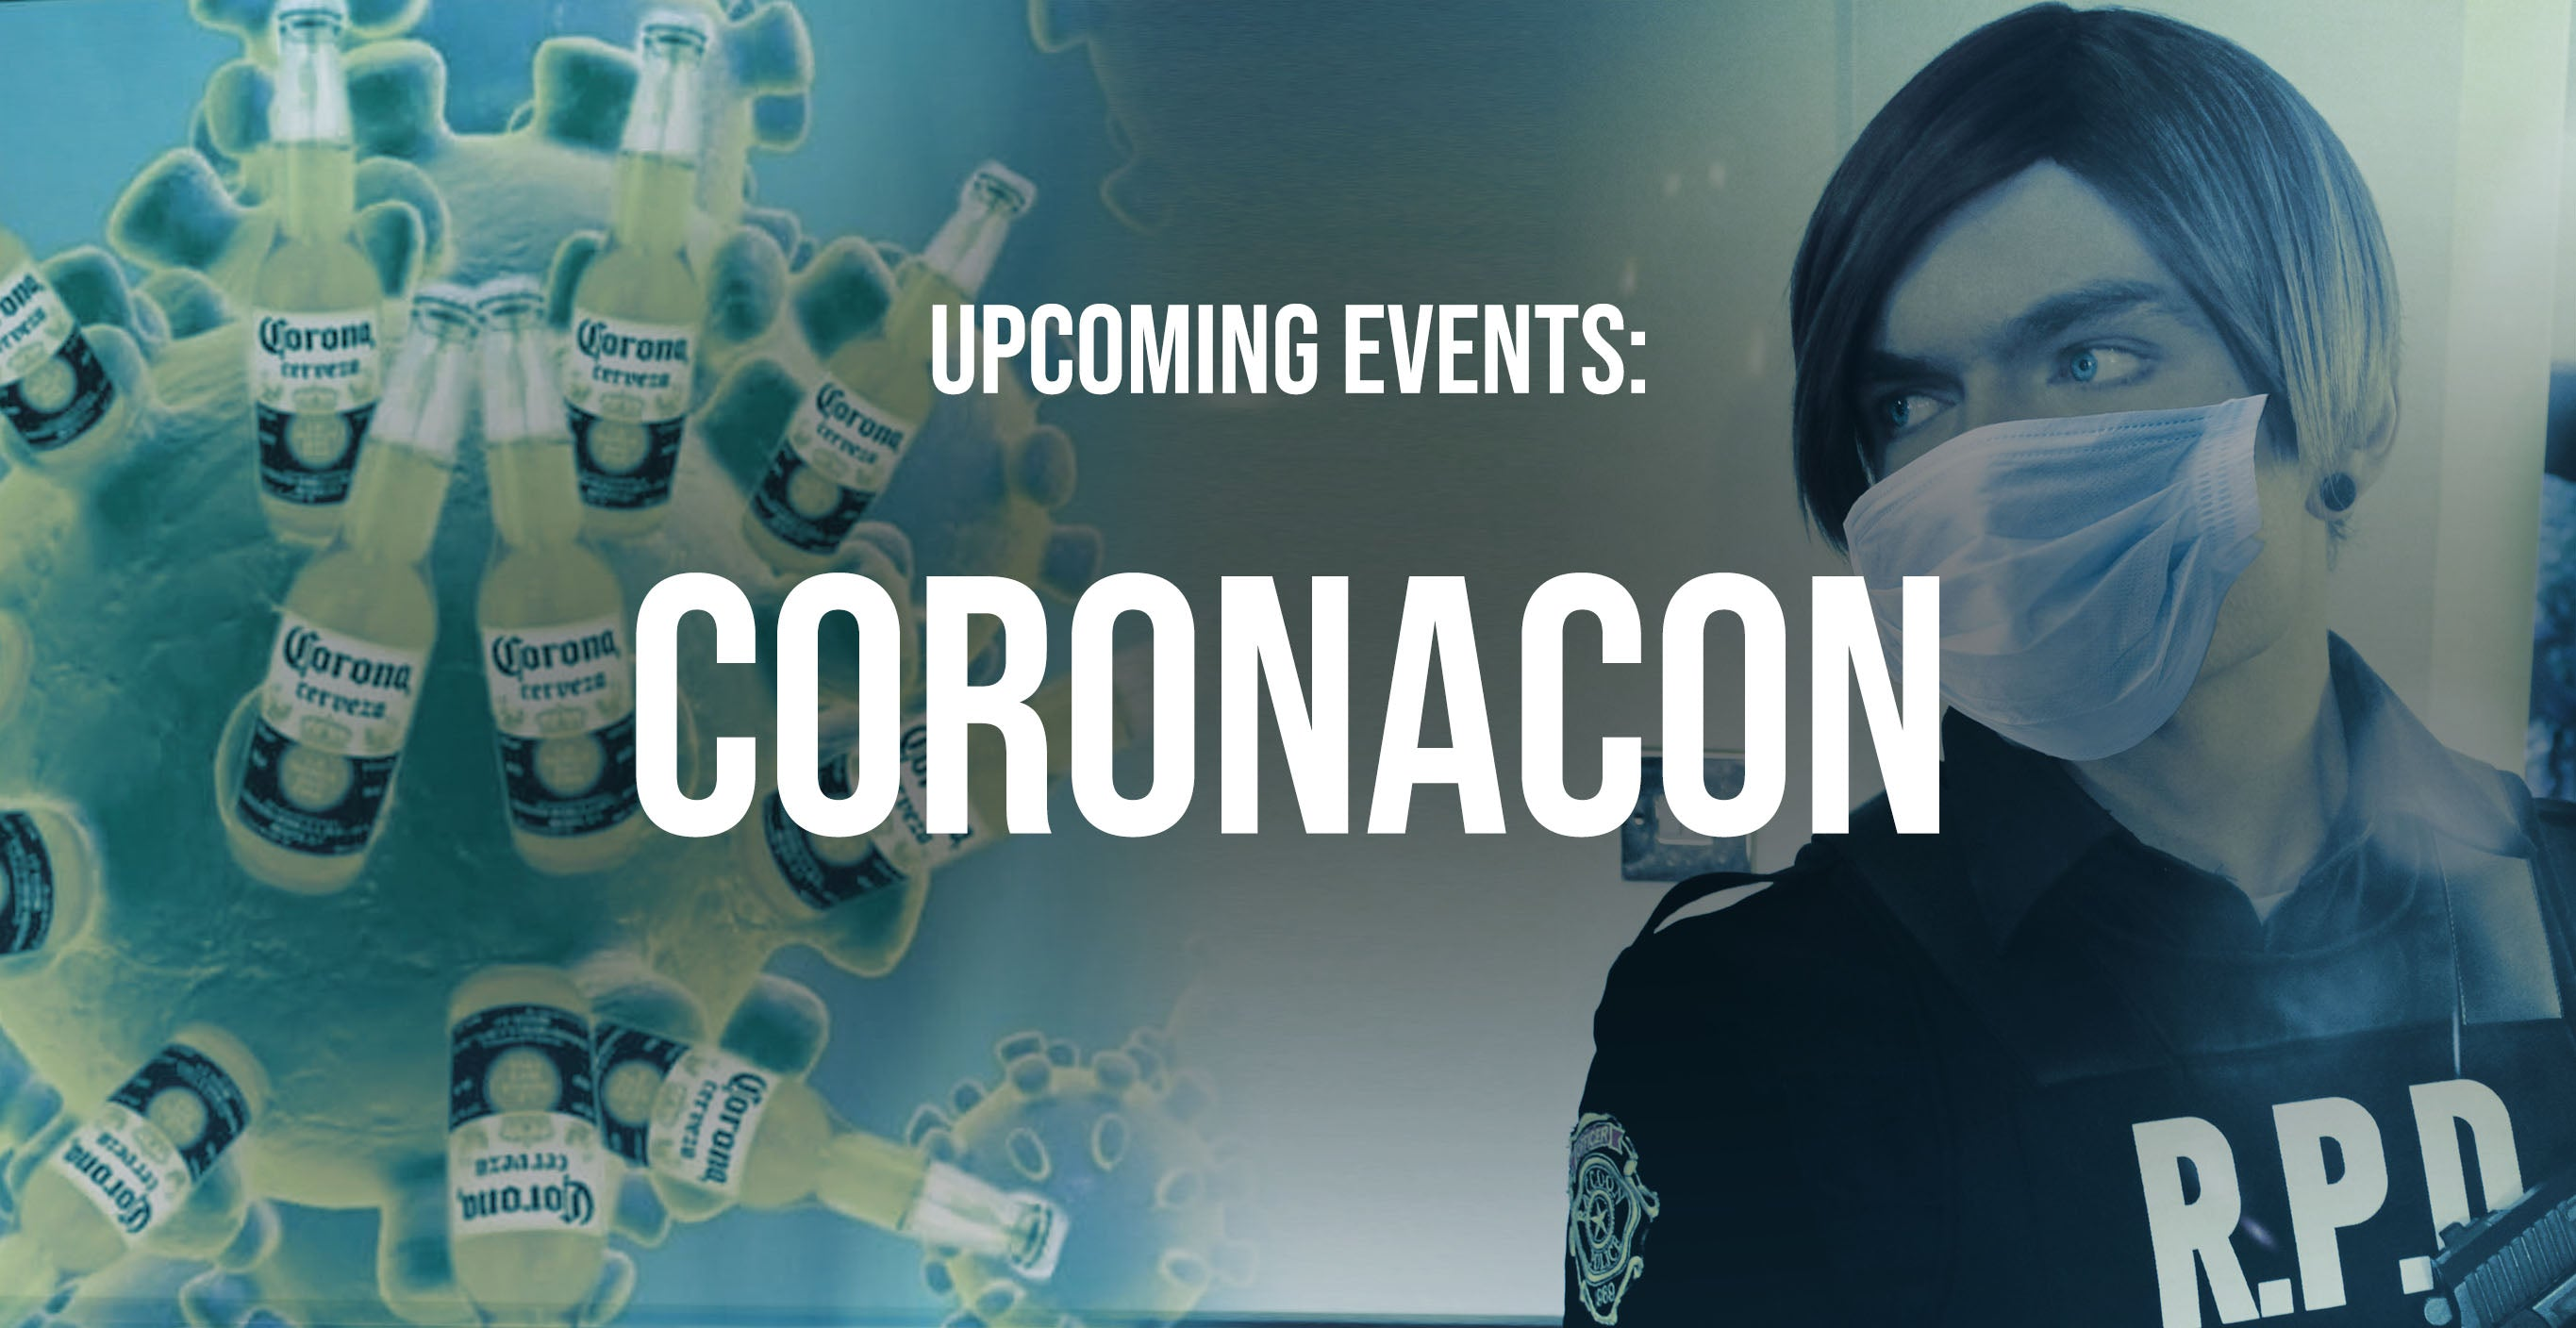 Upcoming appearances and events by Chris 'Cosplay' Minney of Be More Shonen